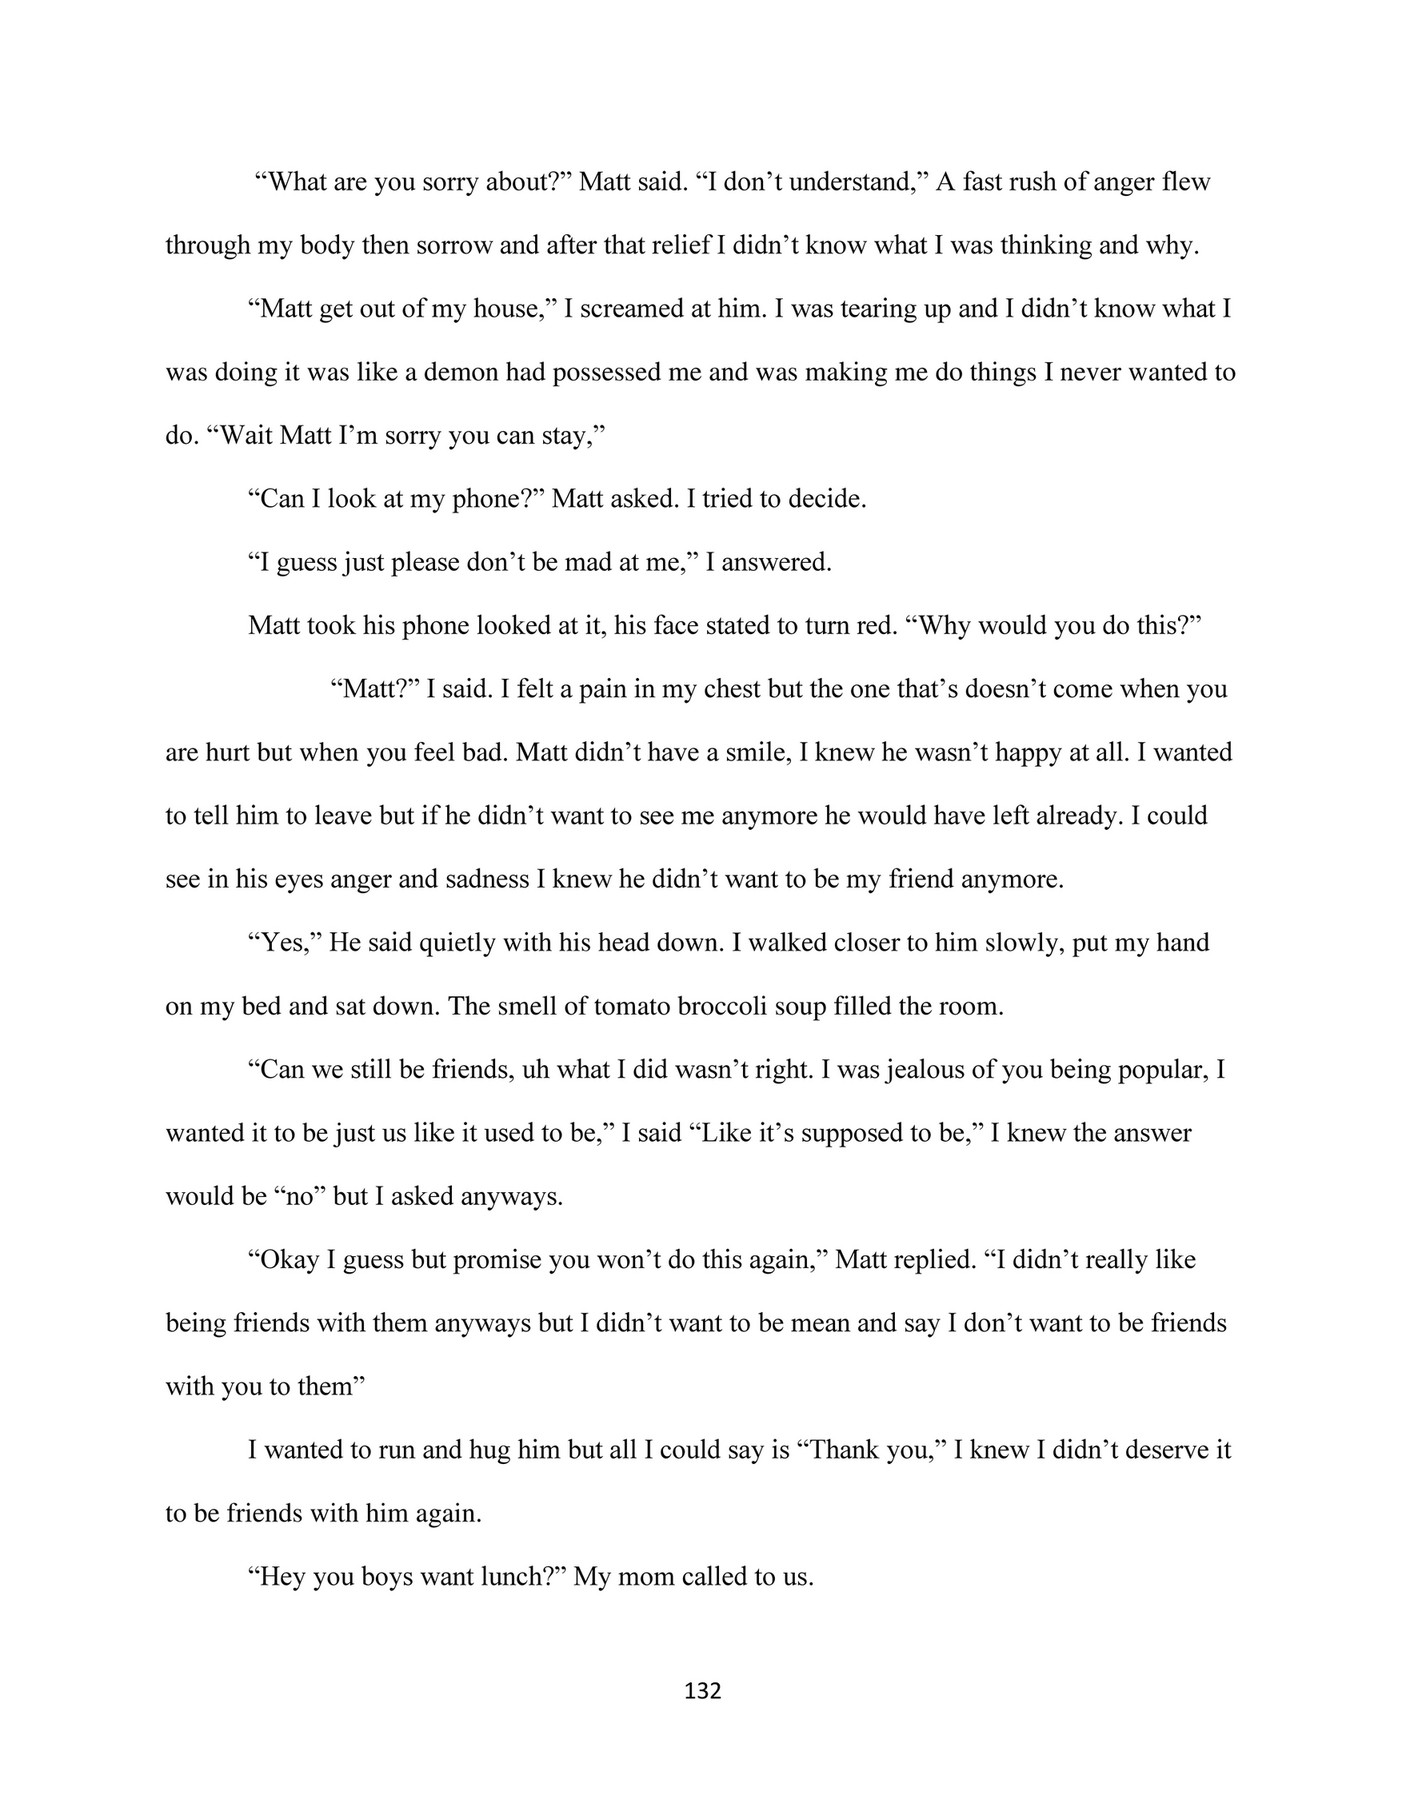 Worksheet Printable Short Stories For 4th Graders worksheet printable short stories for 4th graders mikyu free middle school 7th grade fiction